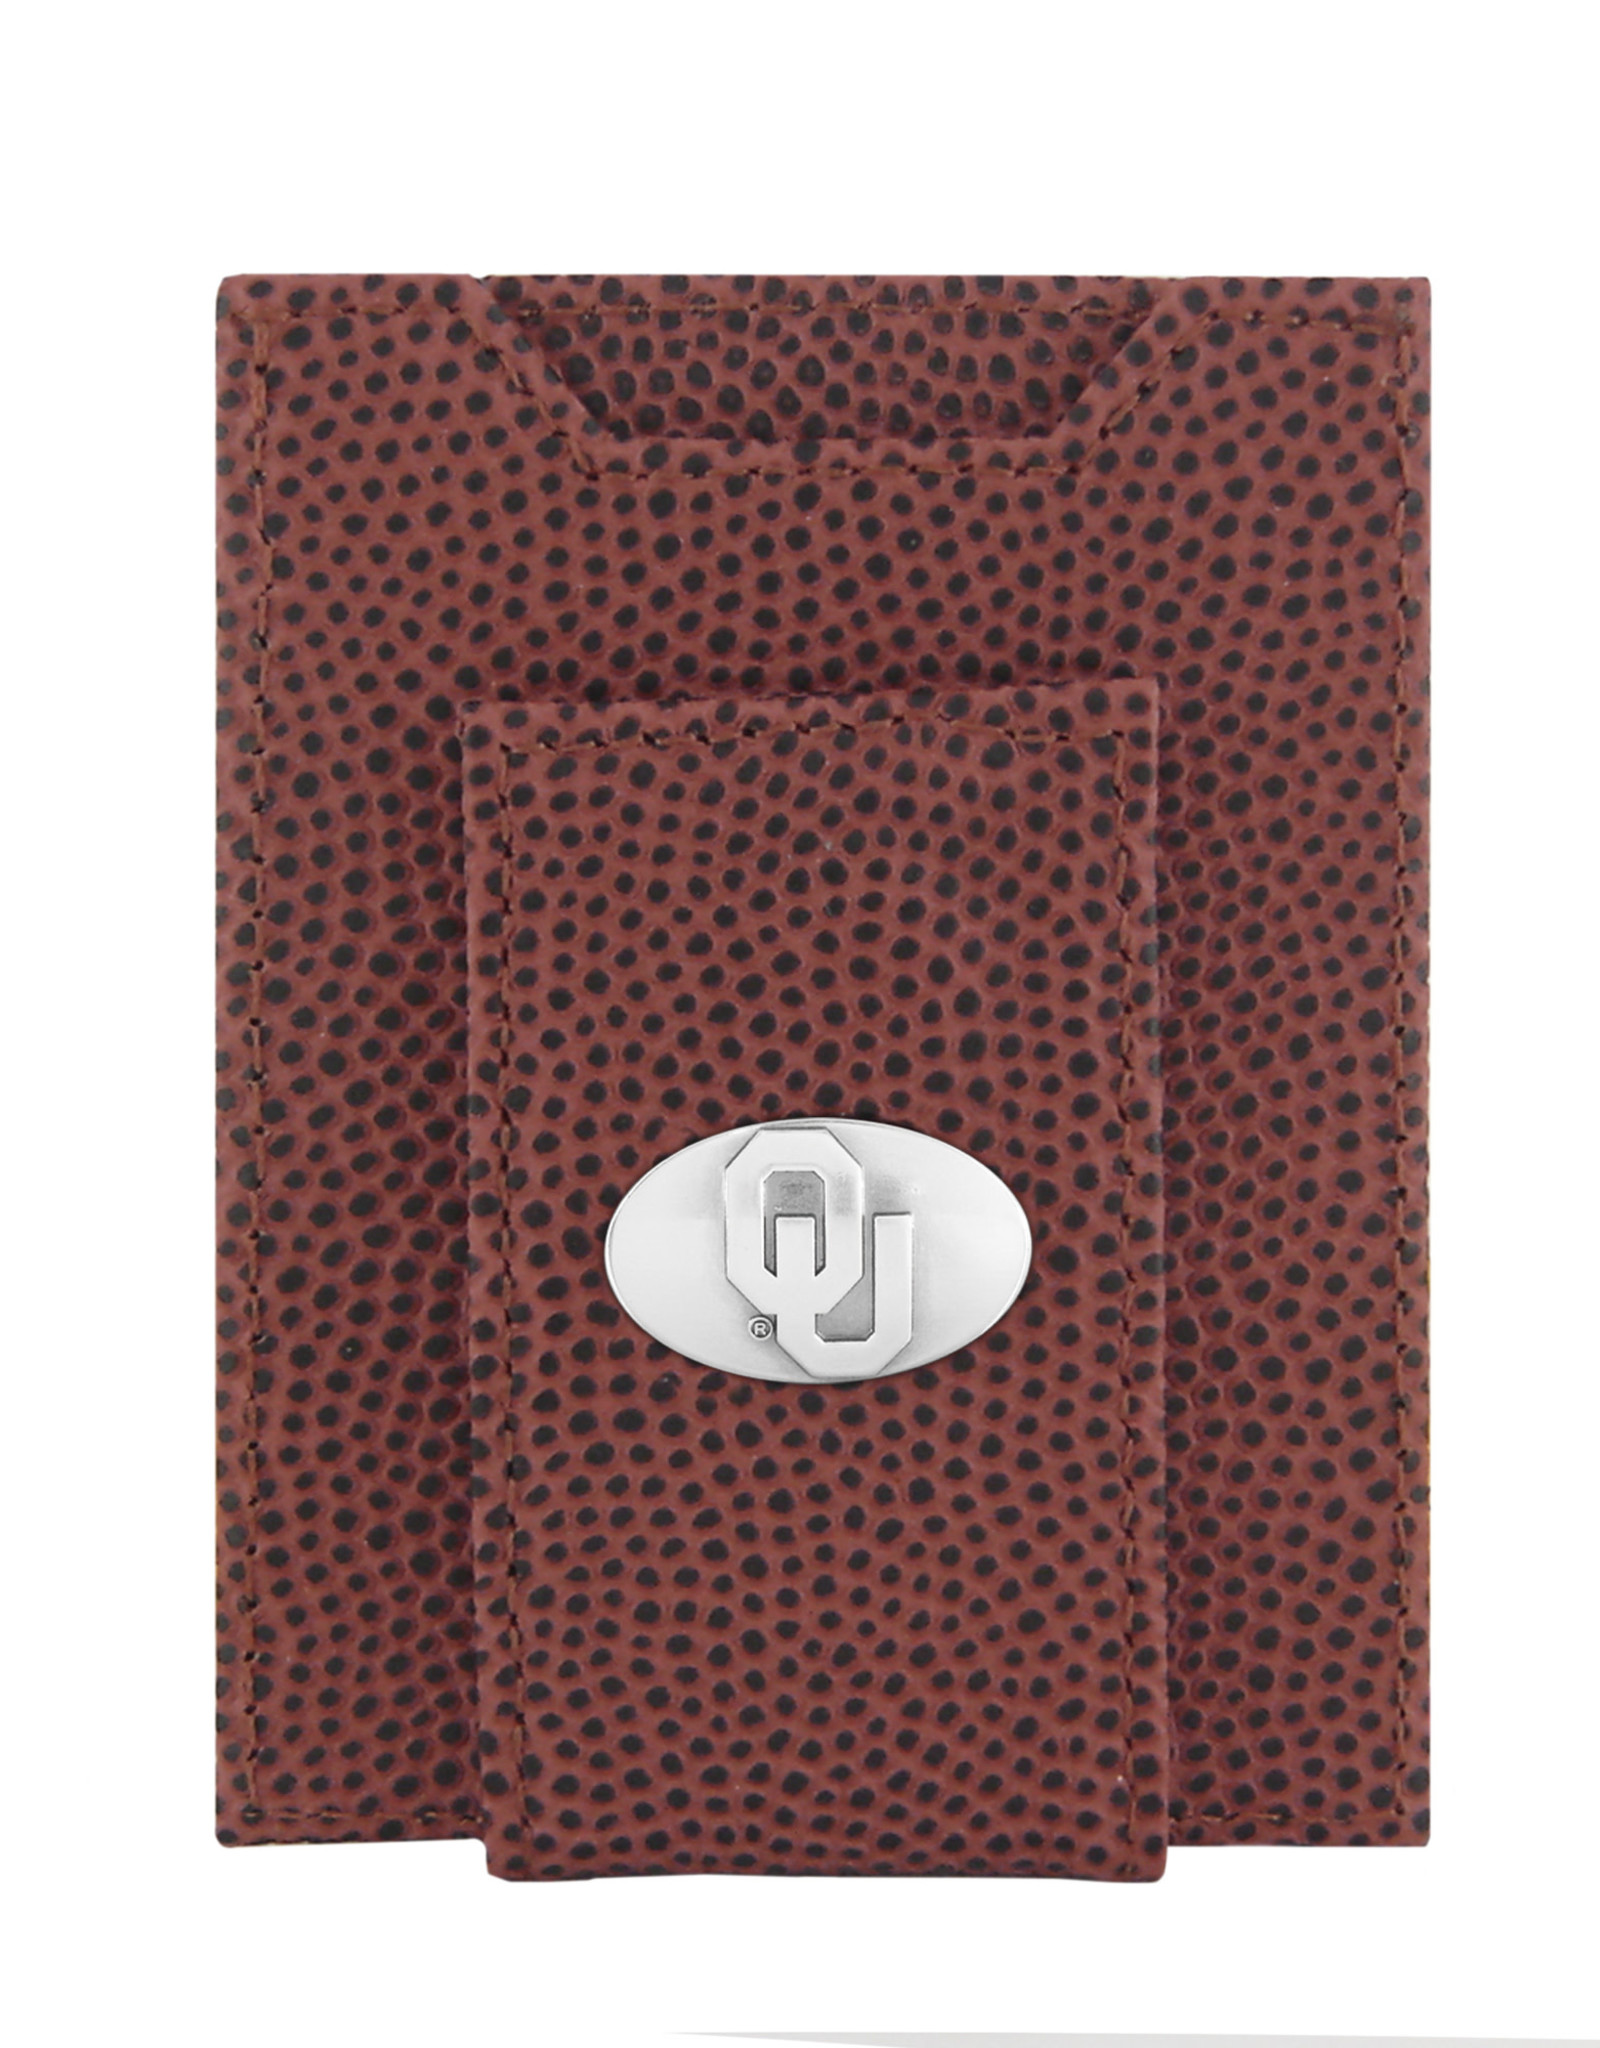 Zep-Pro Zep-Pro Football Grain Front Pocket Embossed Wallet